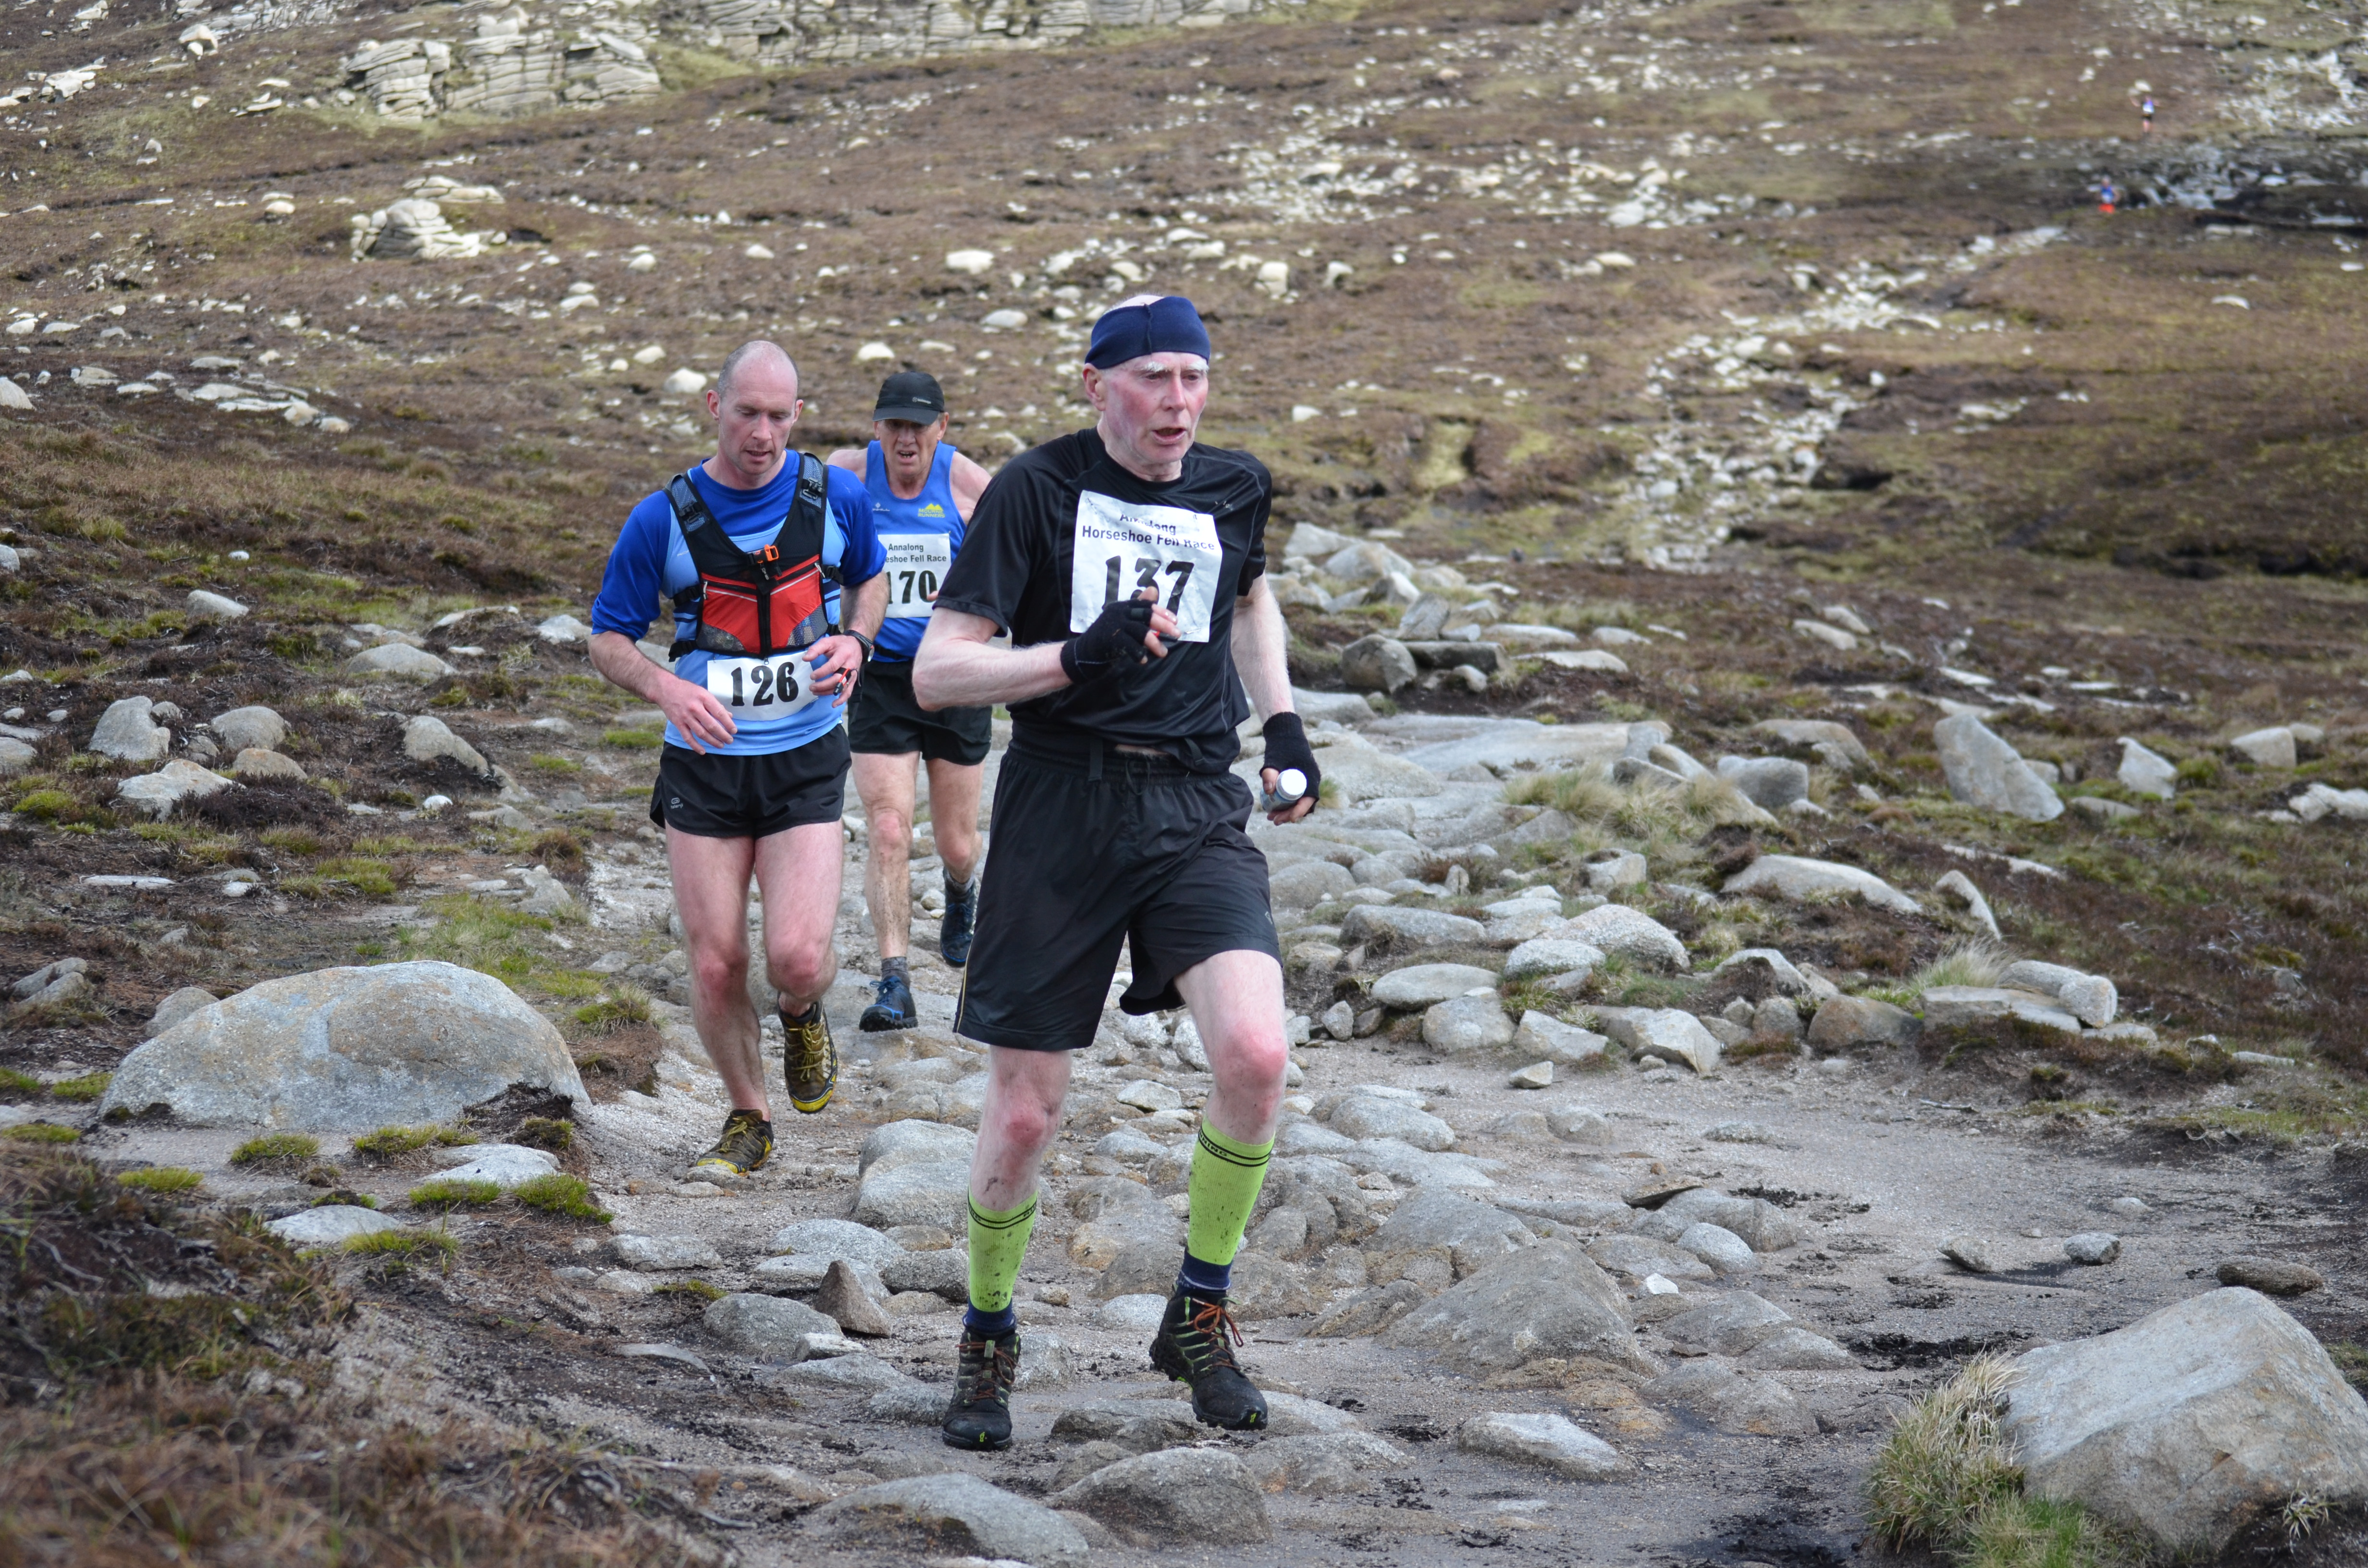 The race for first vet hots up with Jim Patterson (front) beating Stewart Cunningham (back)